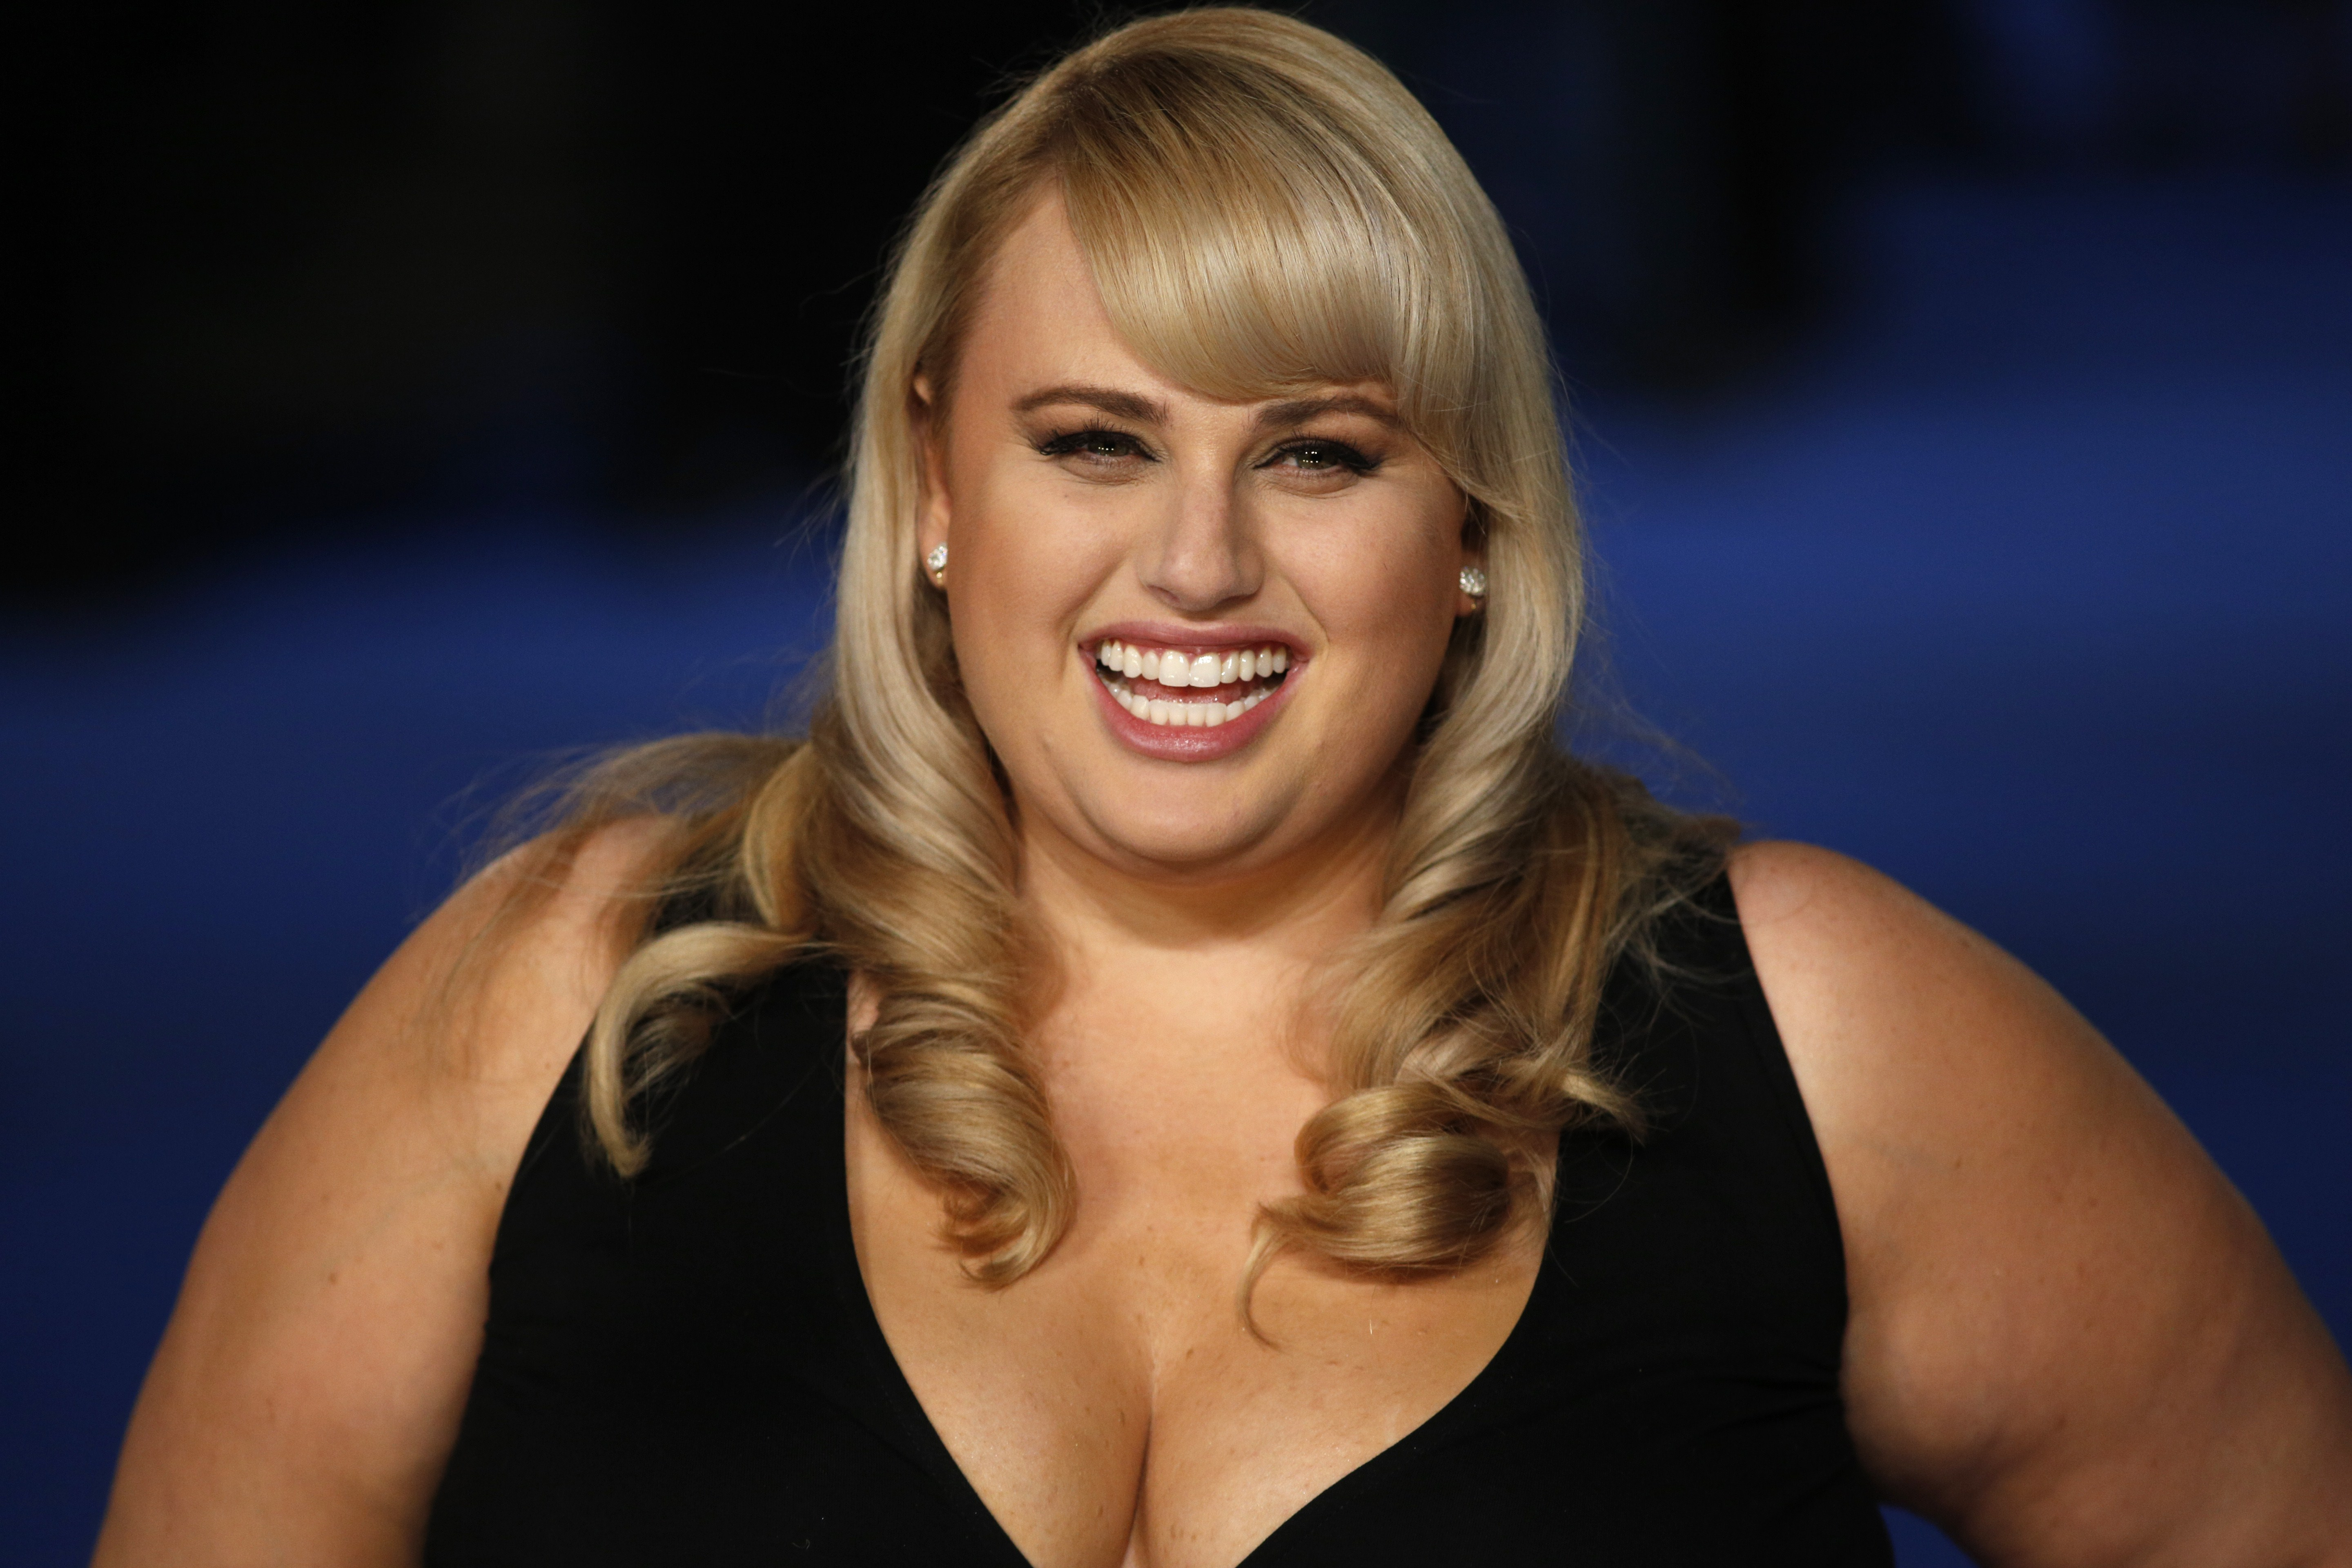 Can Rebel Wilson Really Sing? The 'Pitch Perfect 2' Star is